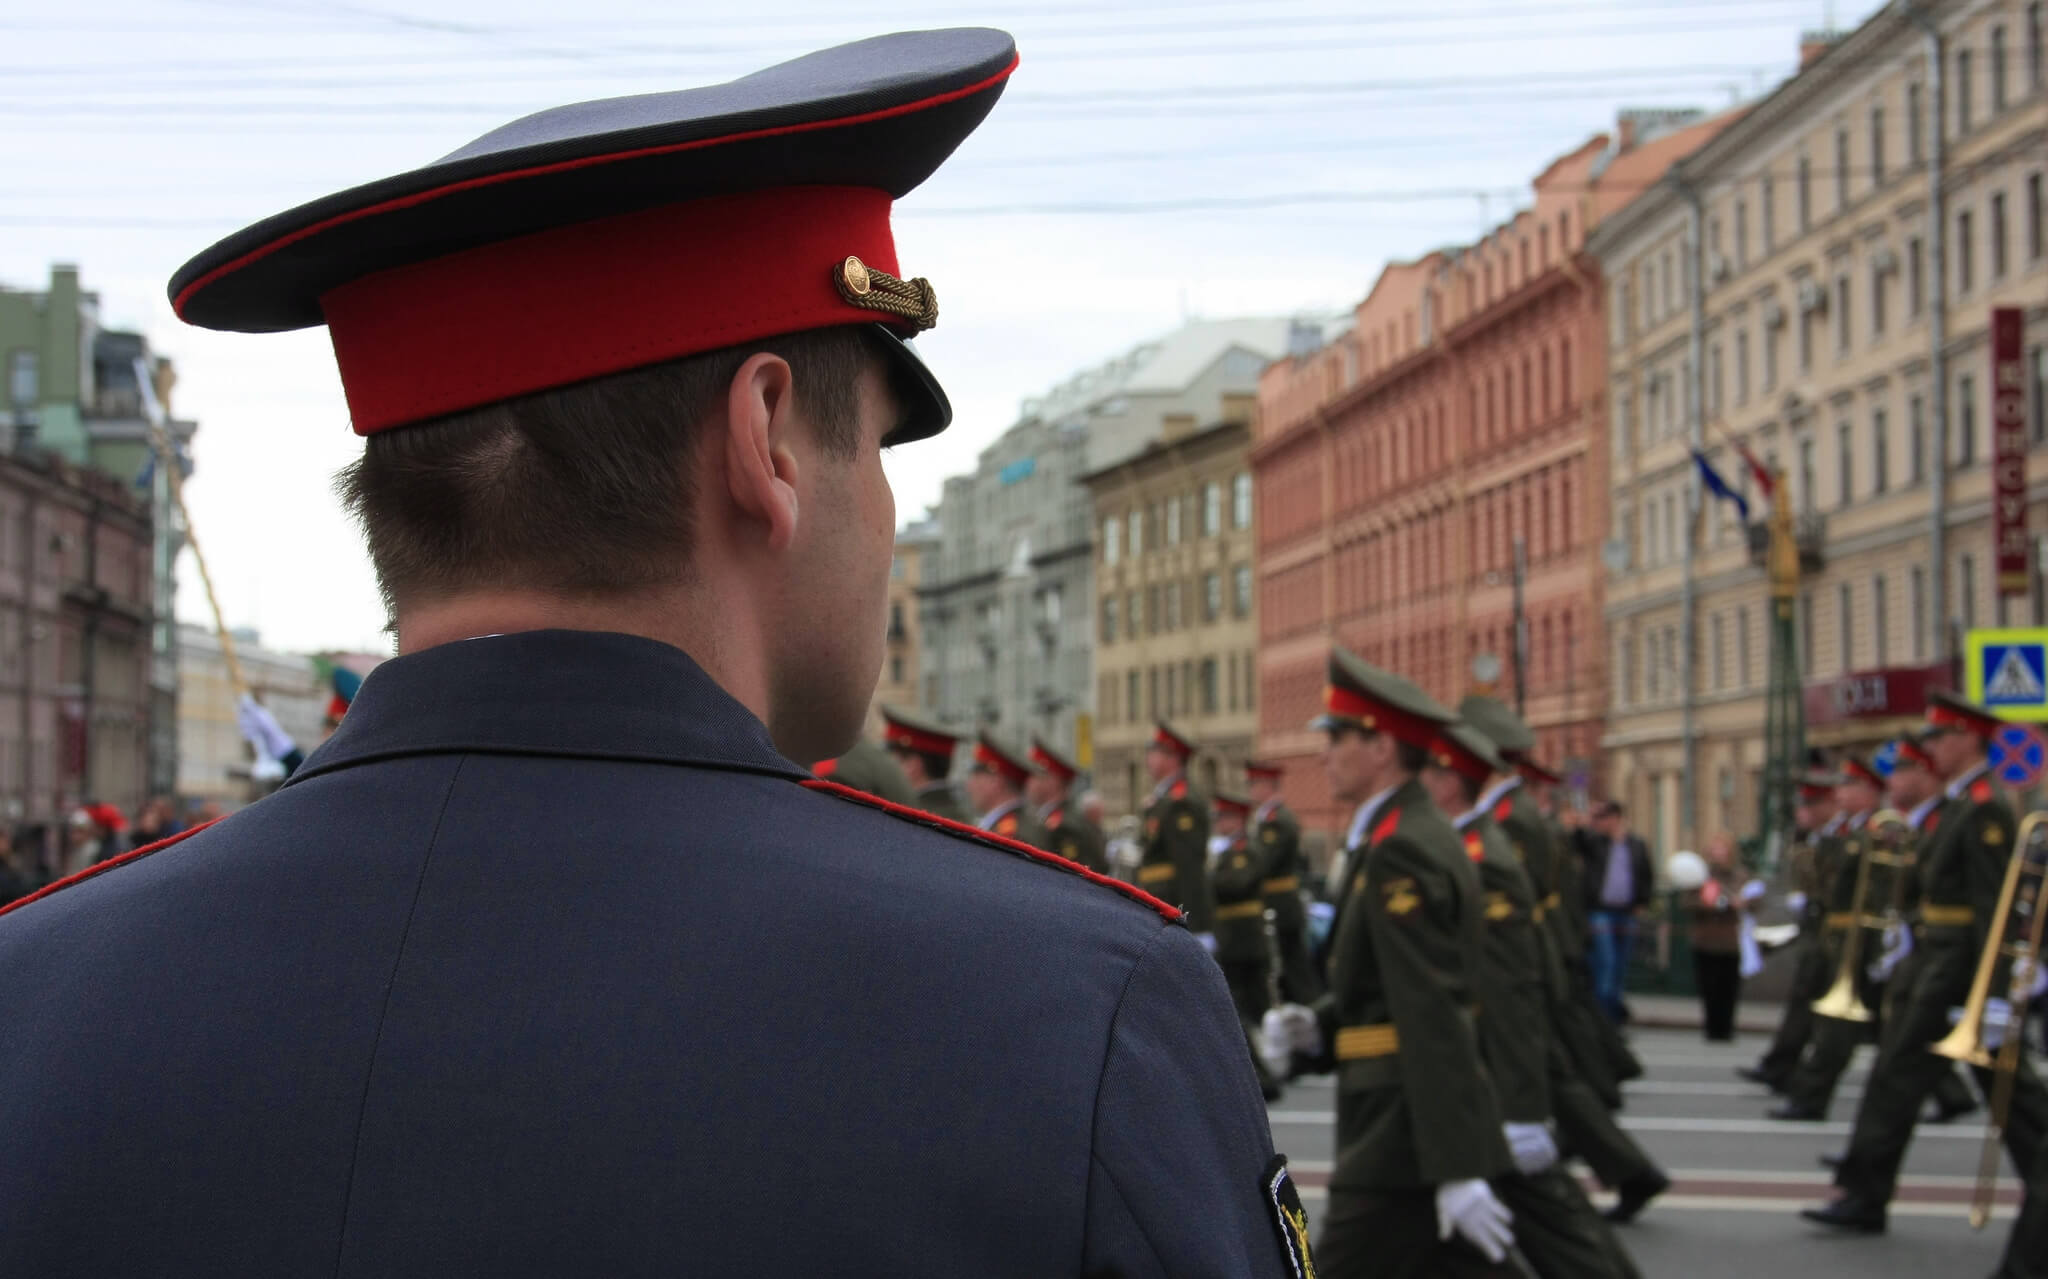 Parade in Sint Petersburg, ter viering van de 300e verjaardag van de stad in 2013. Bron: Richard Burghause / Flickr